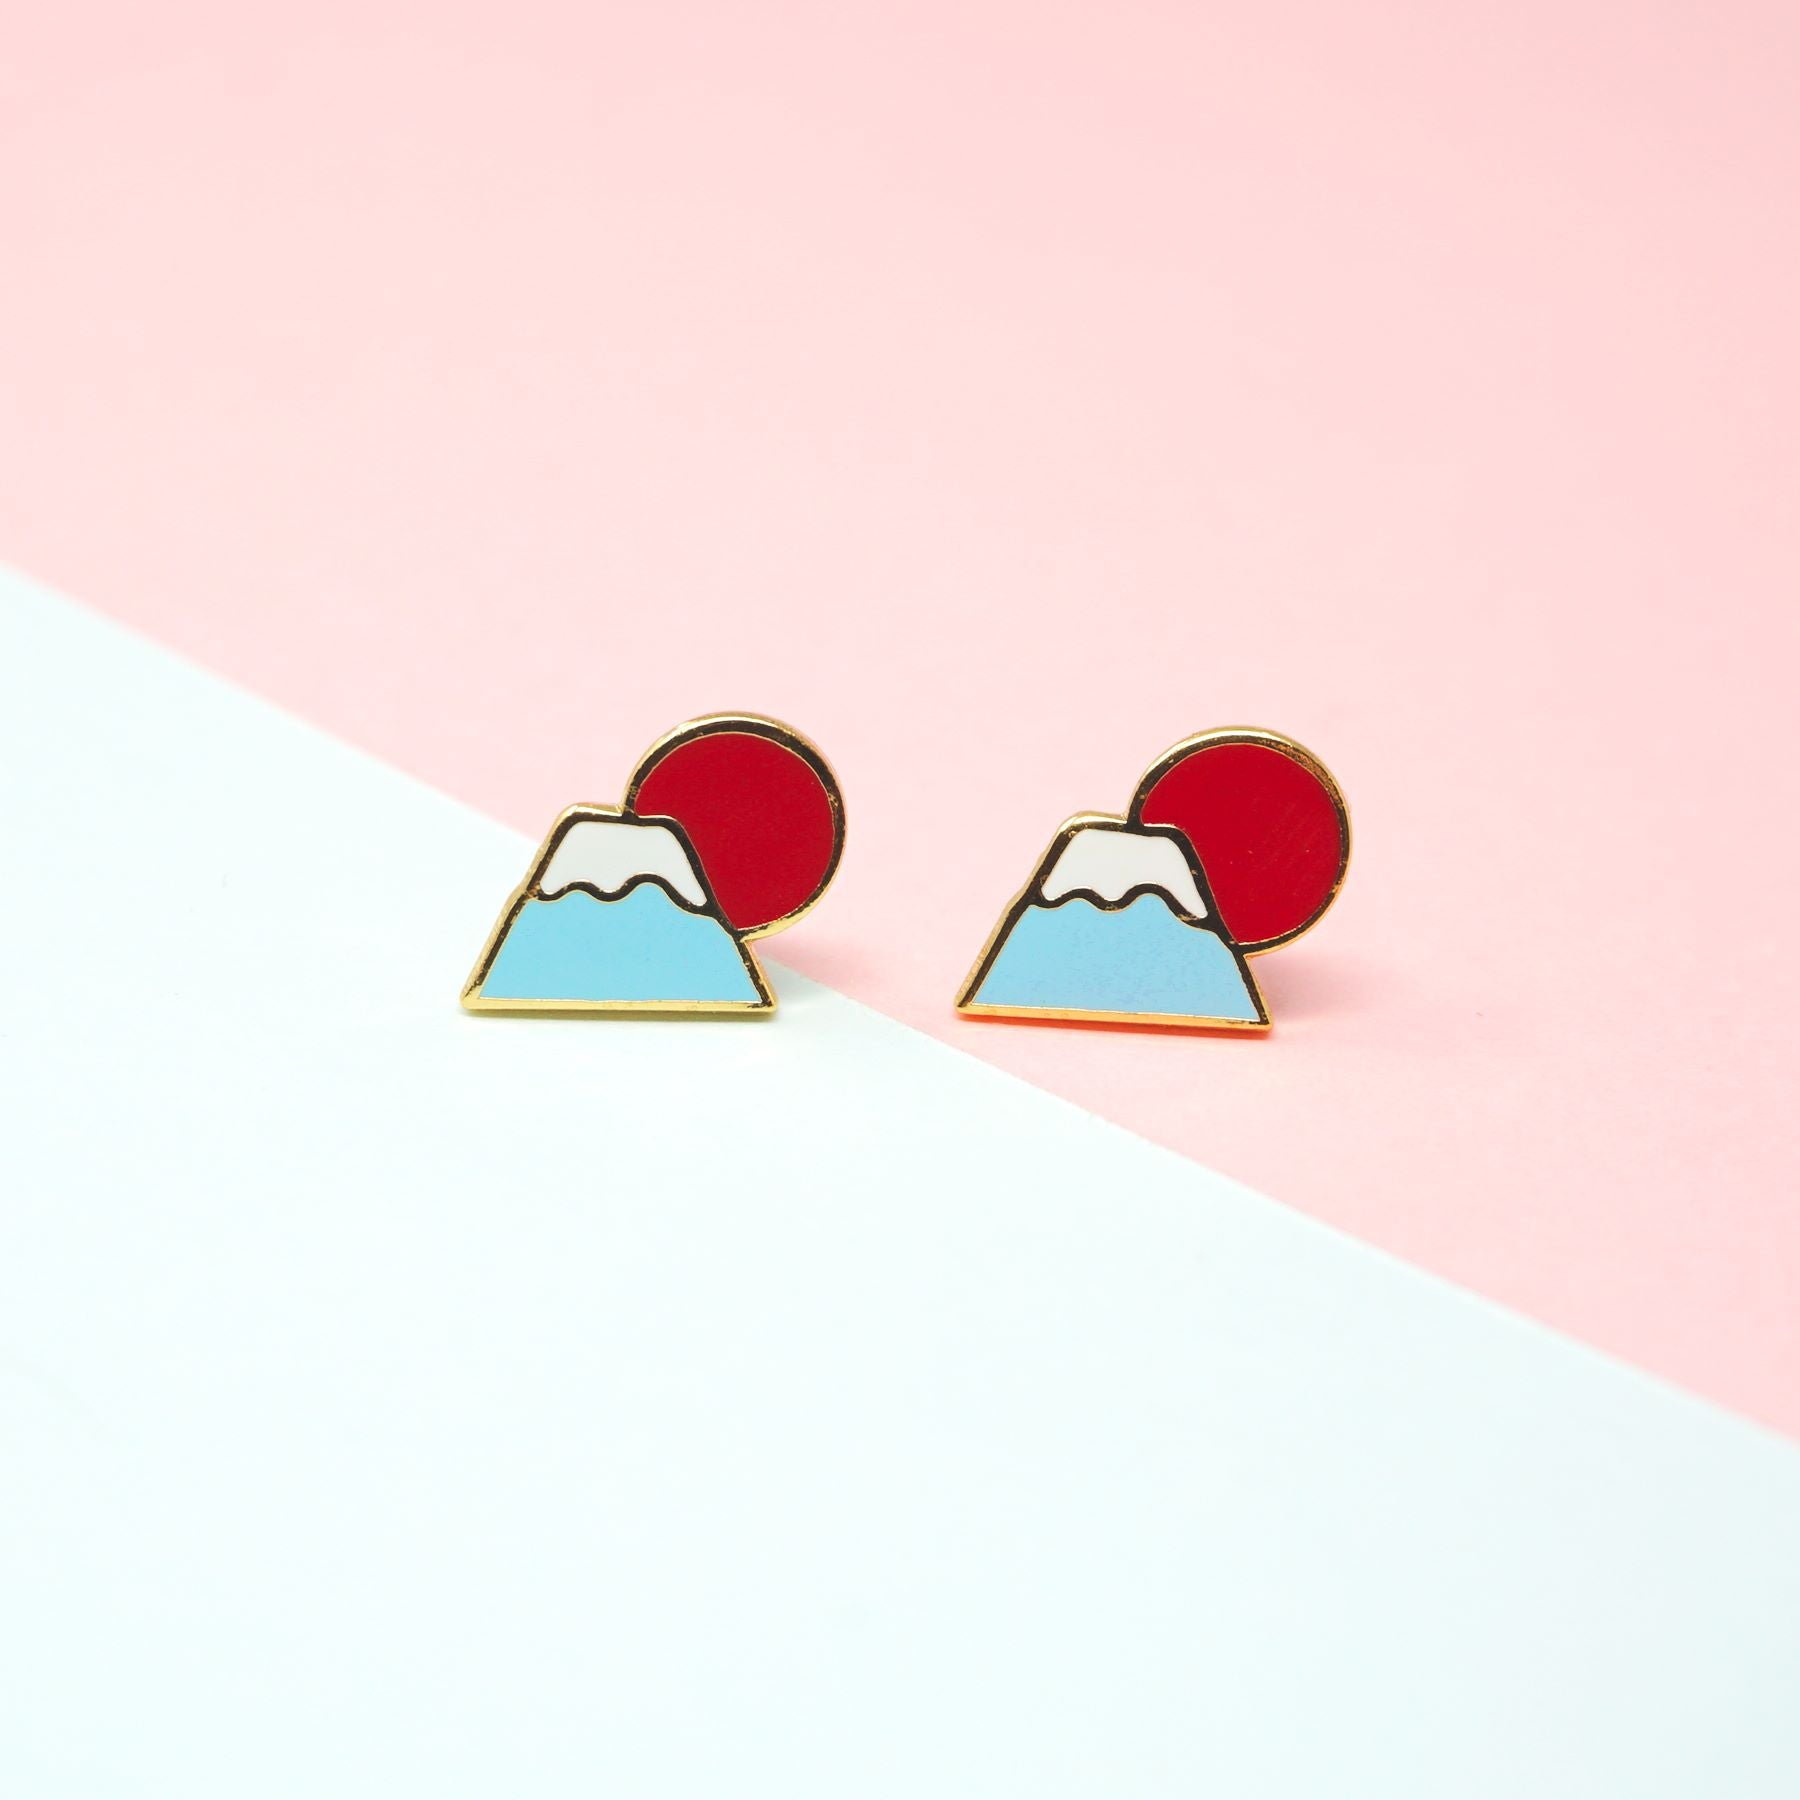 Miss Modi presents Handcrafted Mt. Fuji Sunrise Enamel Stud Earrings